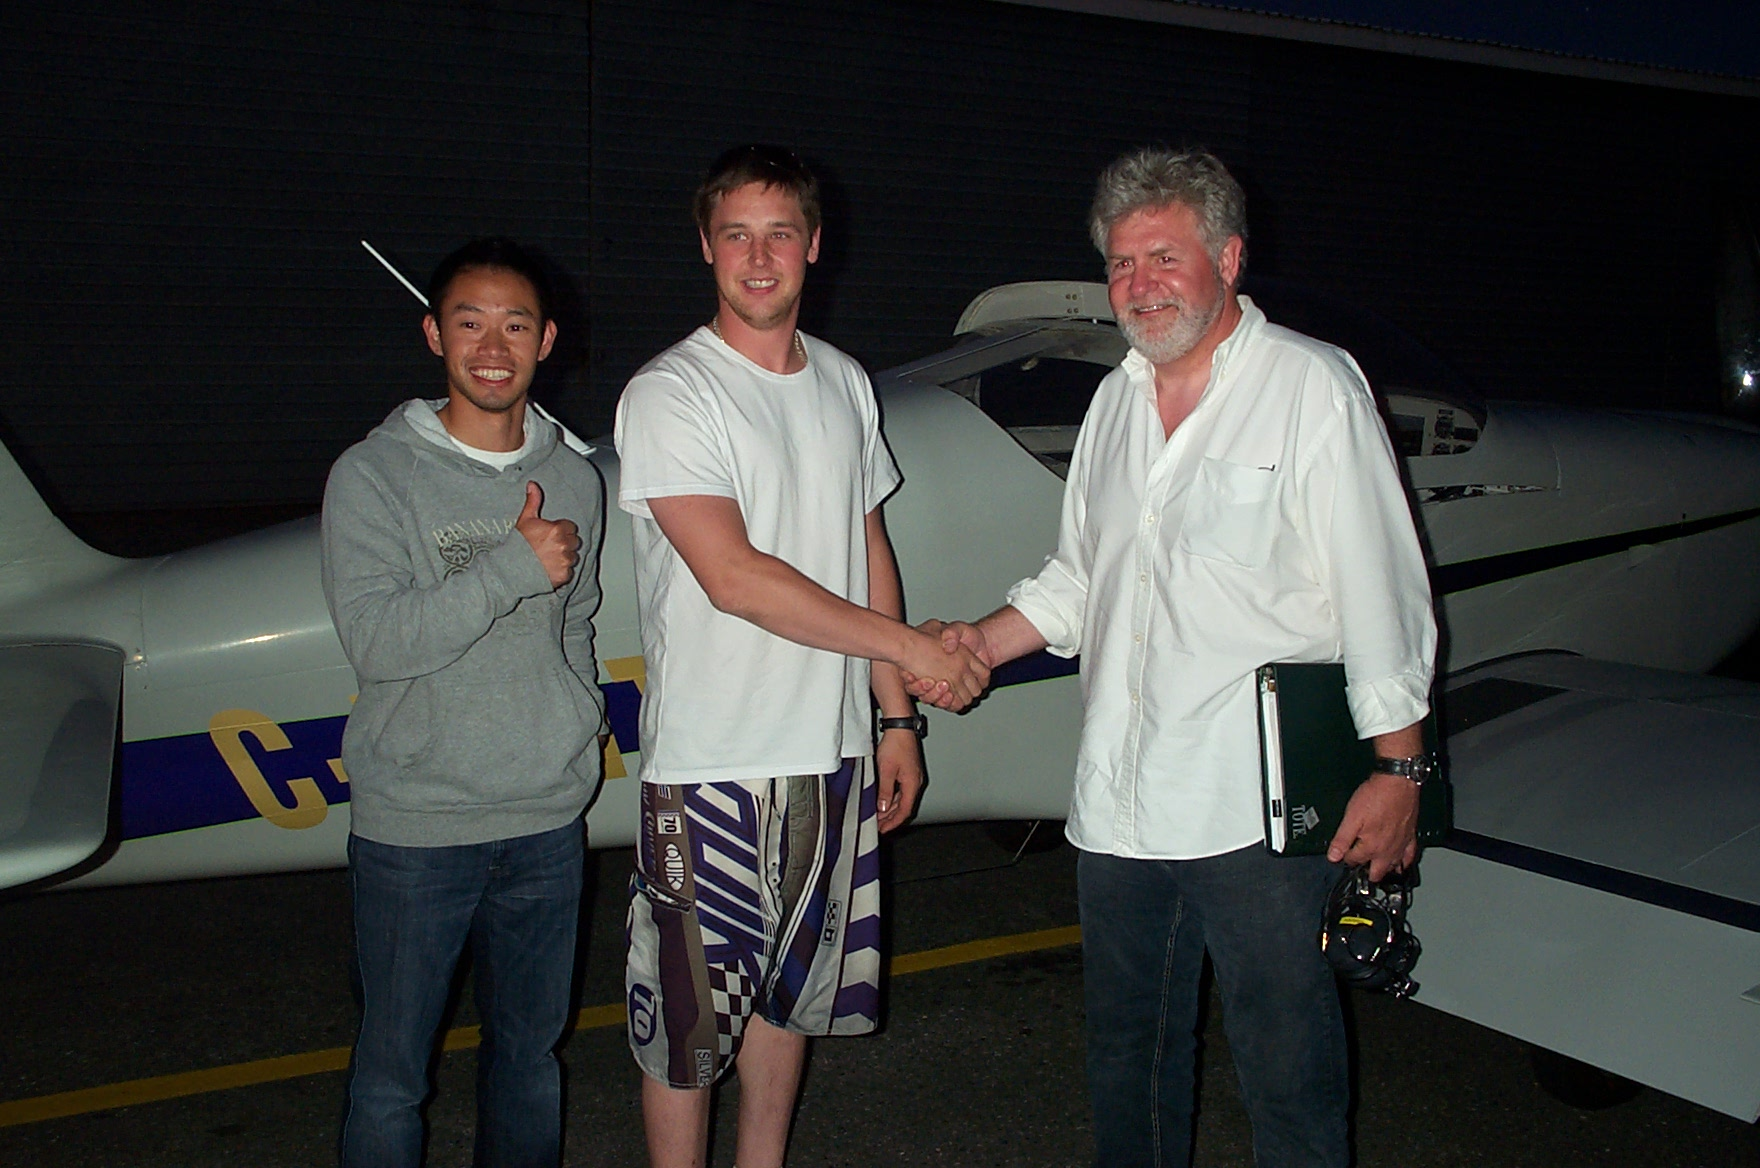 Derrek Sutter receives contratulations from his Flight Instructor Nam Vu and Pilot Examiner Paul Harris, following the successful completion of Derrek's Private Pilot Flight Test on July 6, 2010. Congrats also to Derrek's previous Flight Instructors, Rod Giesbrecht and Naomi Jones.  Langley Flying School.